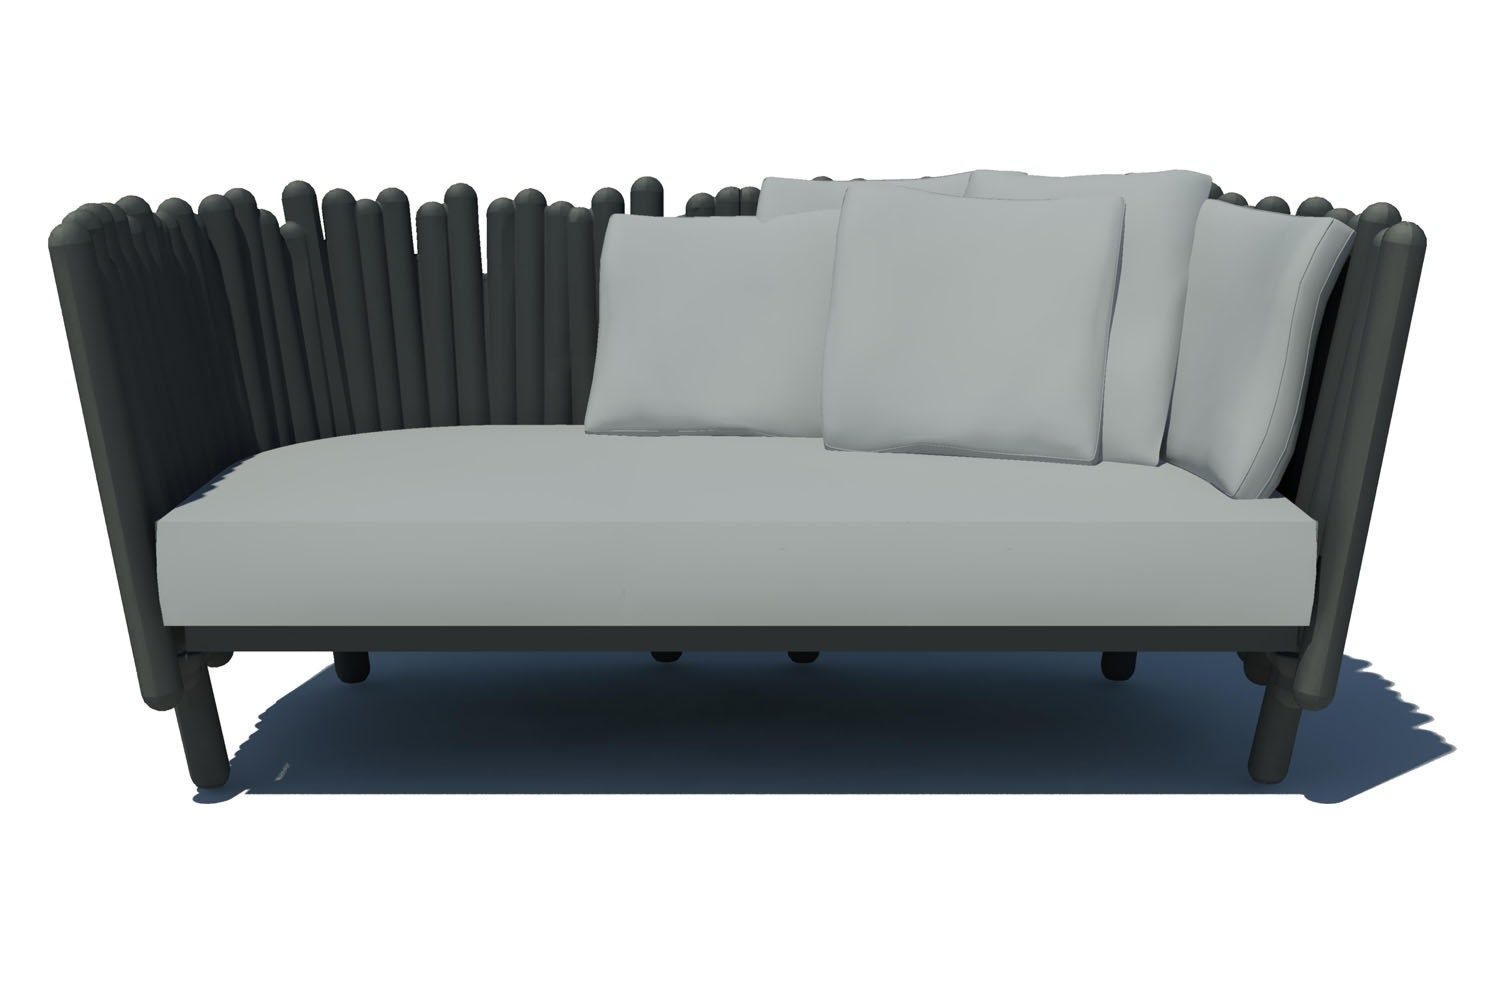 Canisse Sofa by Philippe Nigro for Serralunga